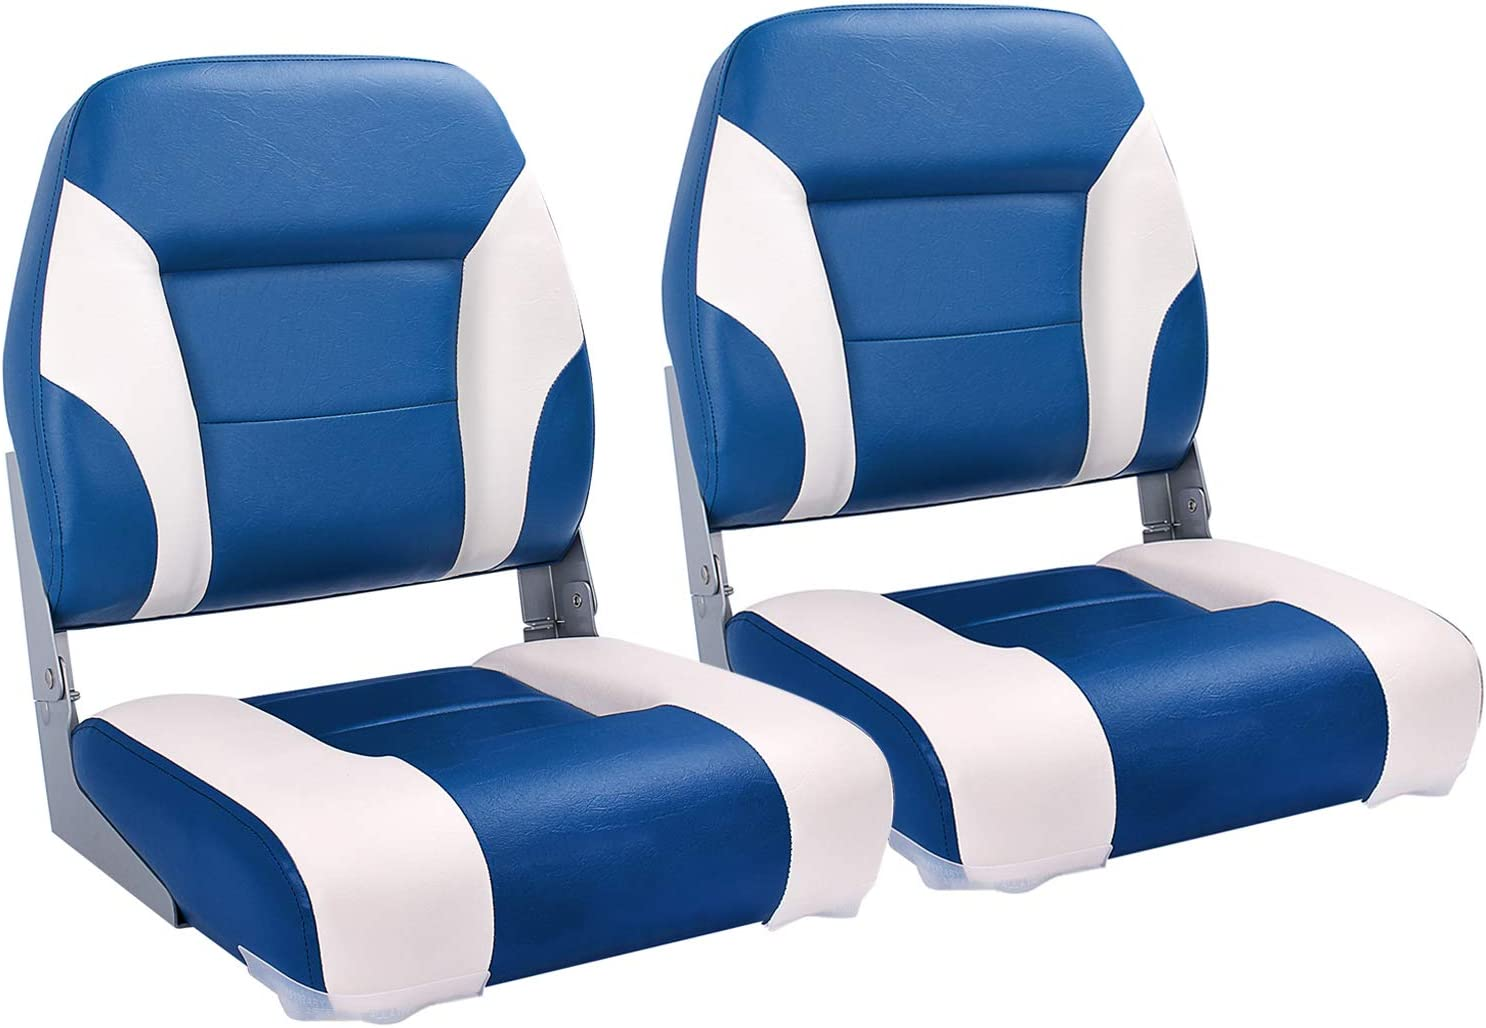 Northcaptain T2 Deluxe Low Back Folding Boat Seat 2 Seats